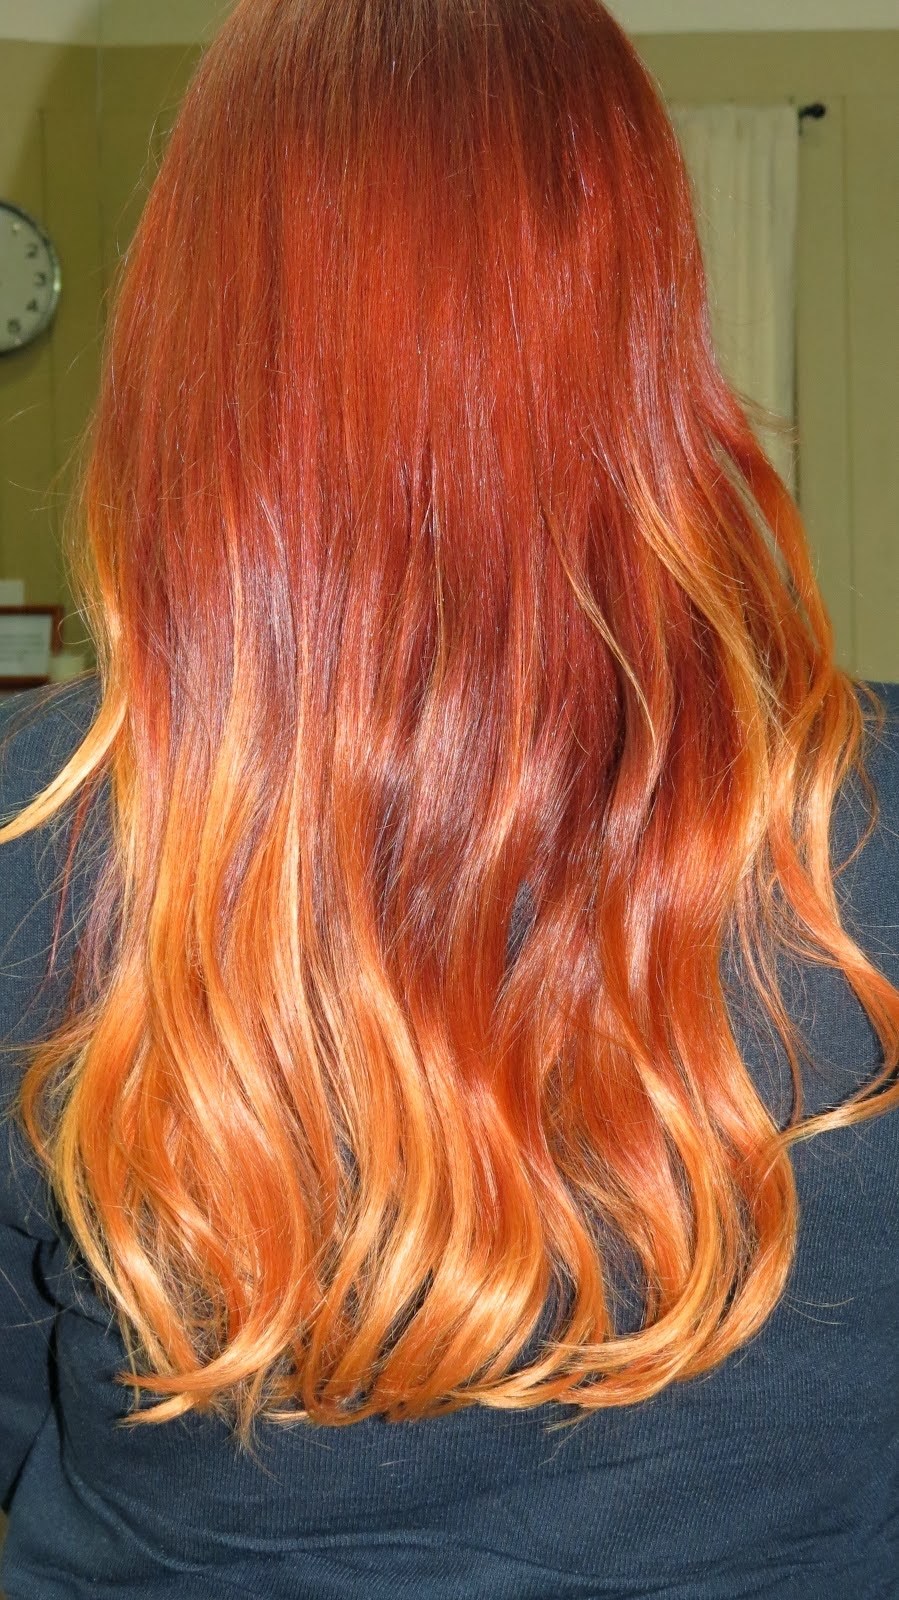 An Ombre Reverse The Trip Of How Hair Trends Begin